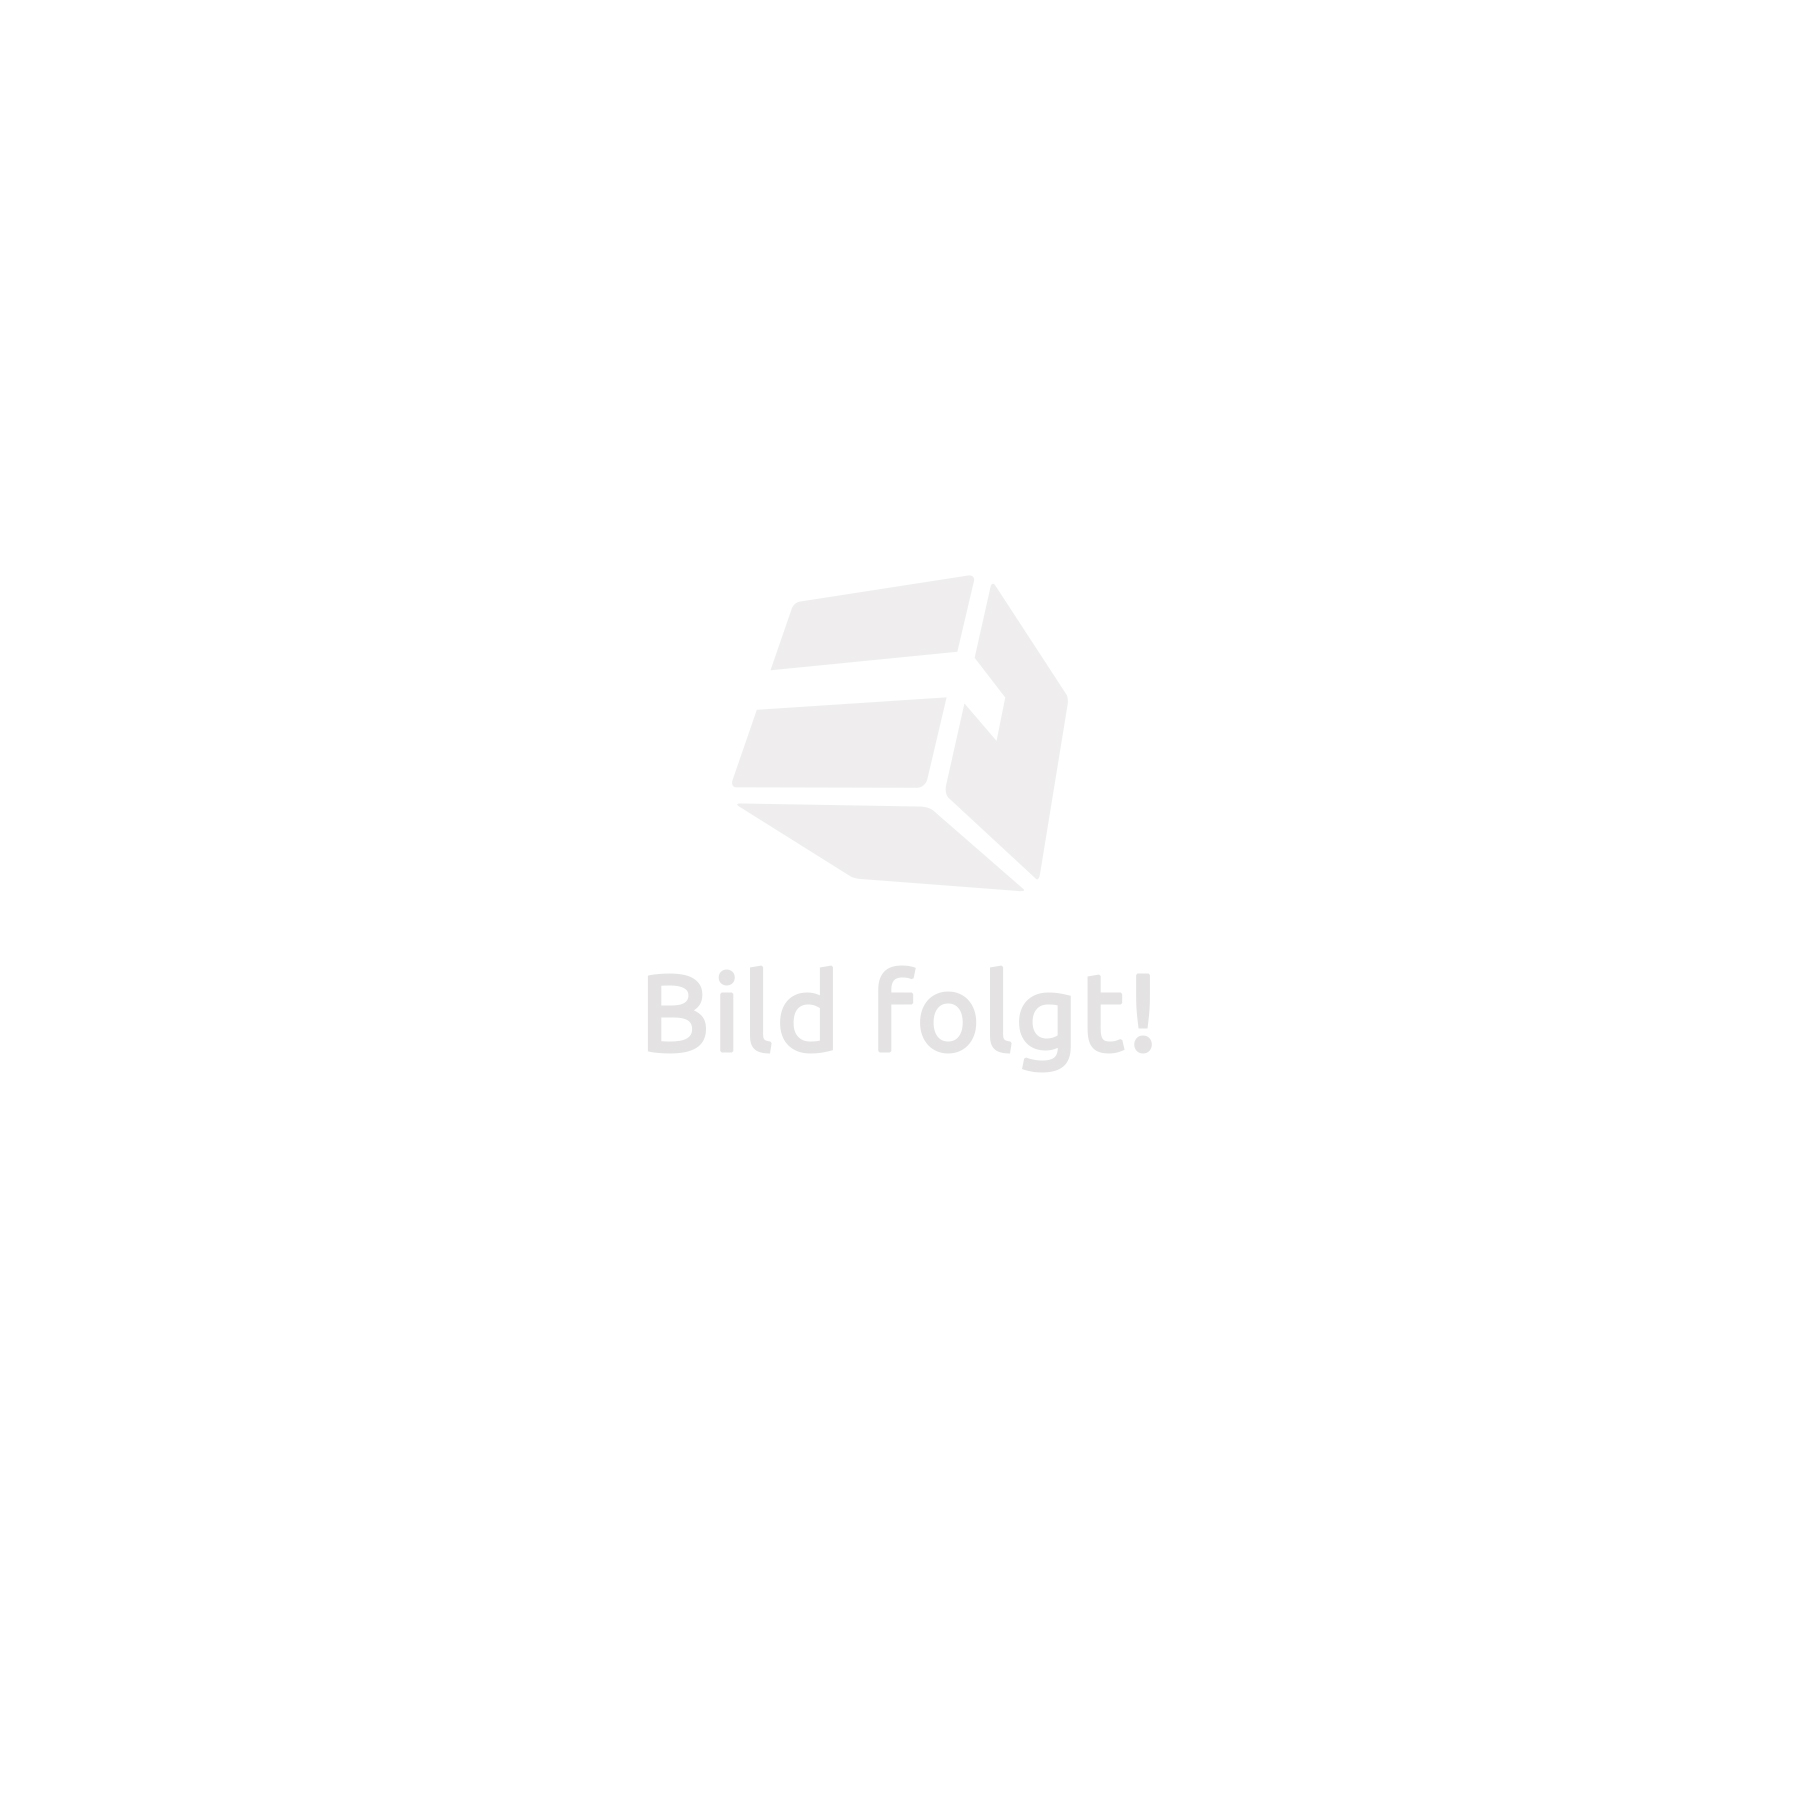 BBQ made of powder-coated metal